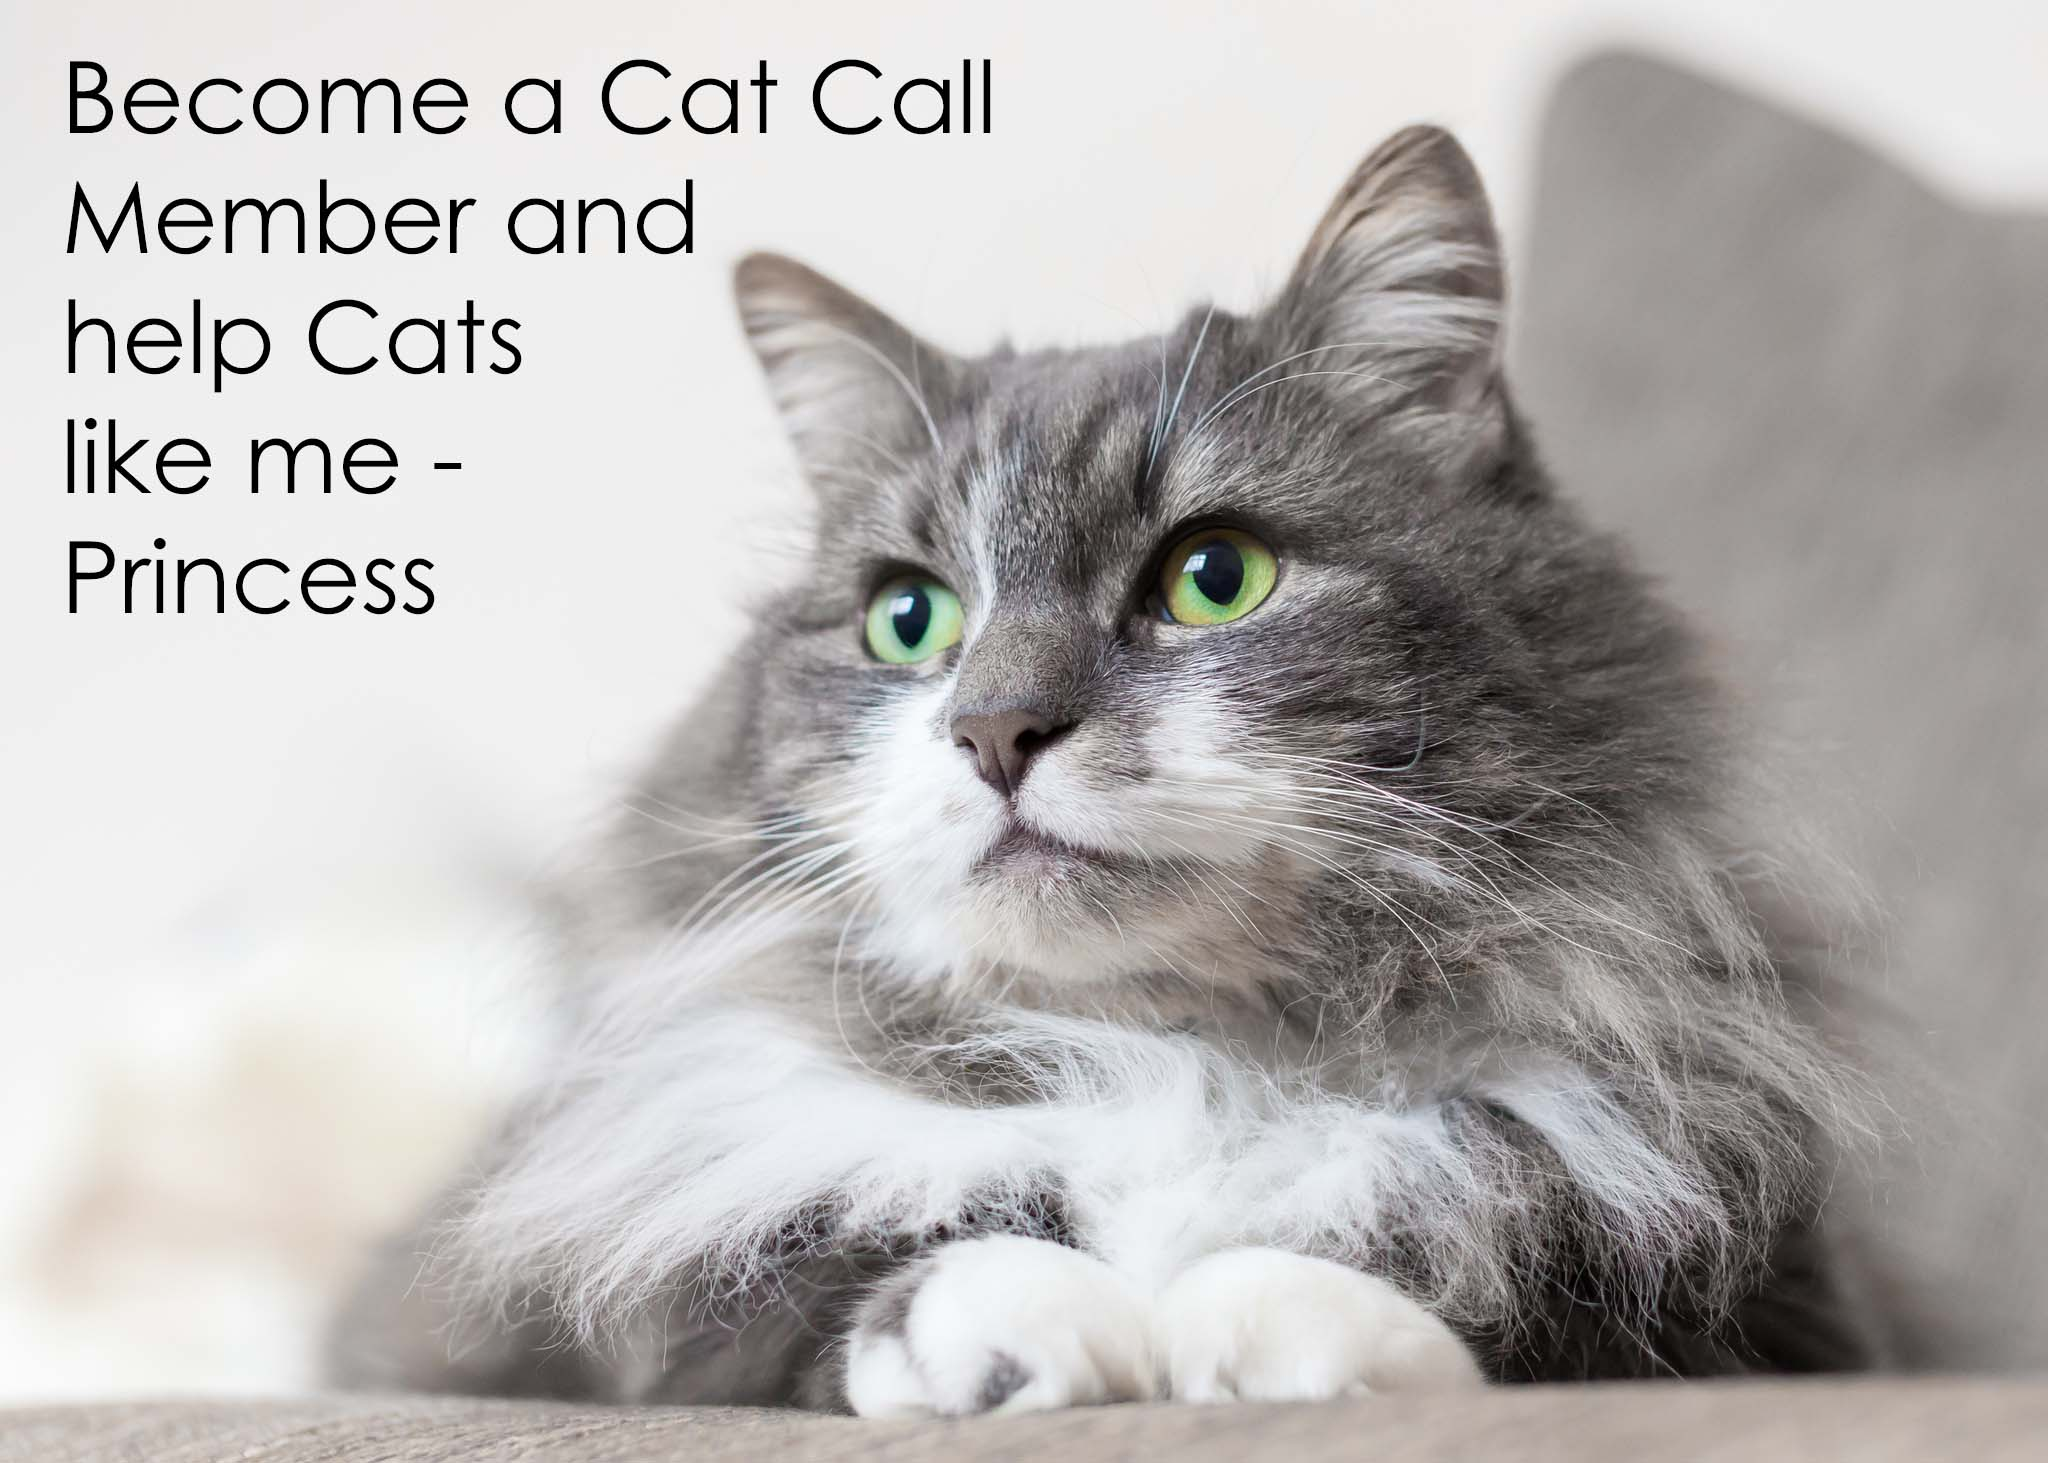 Become a Cat Call Member